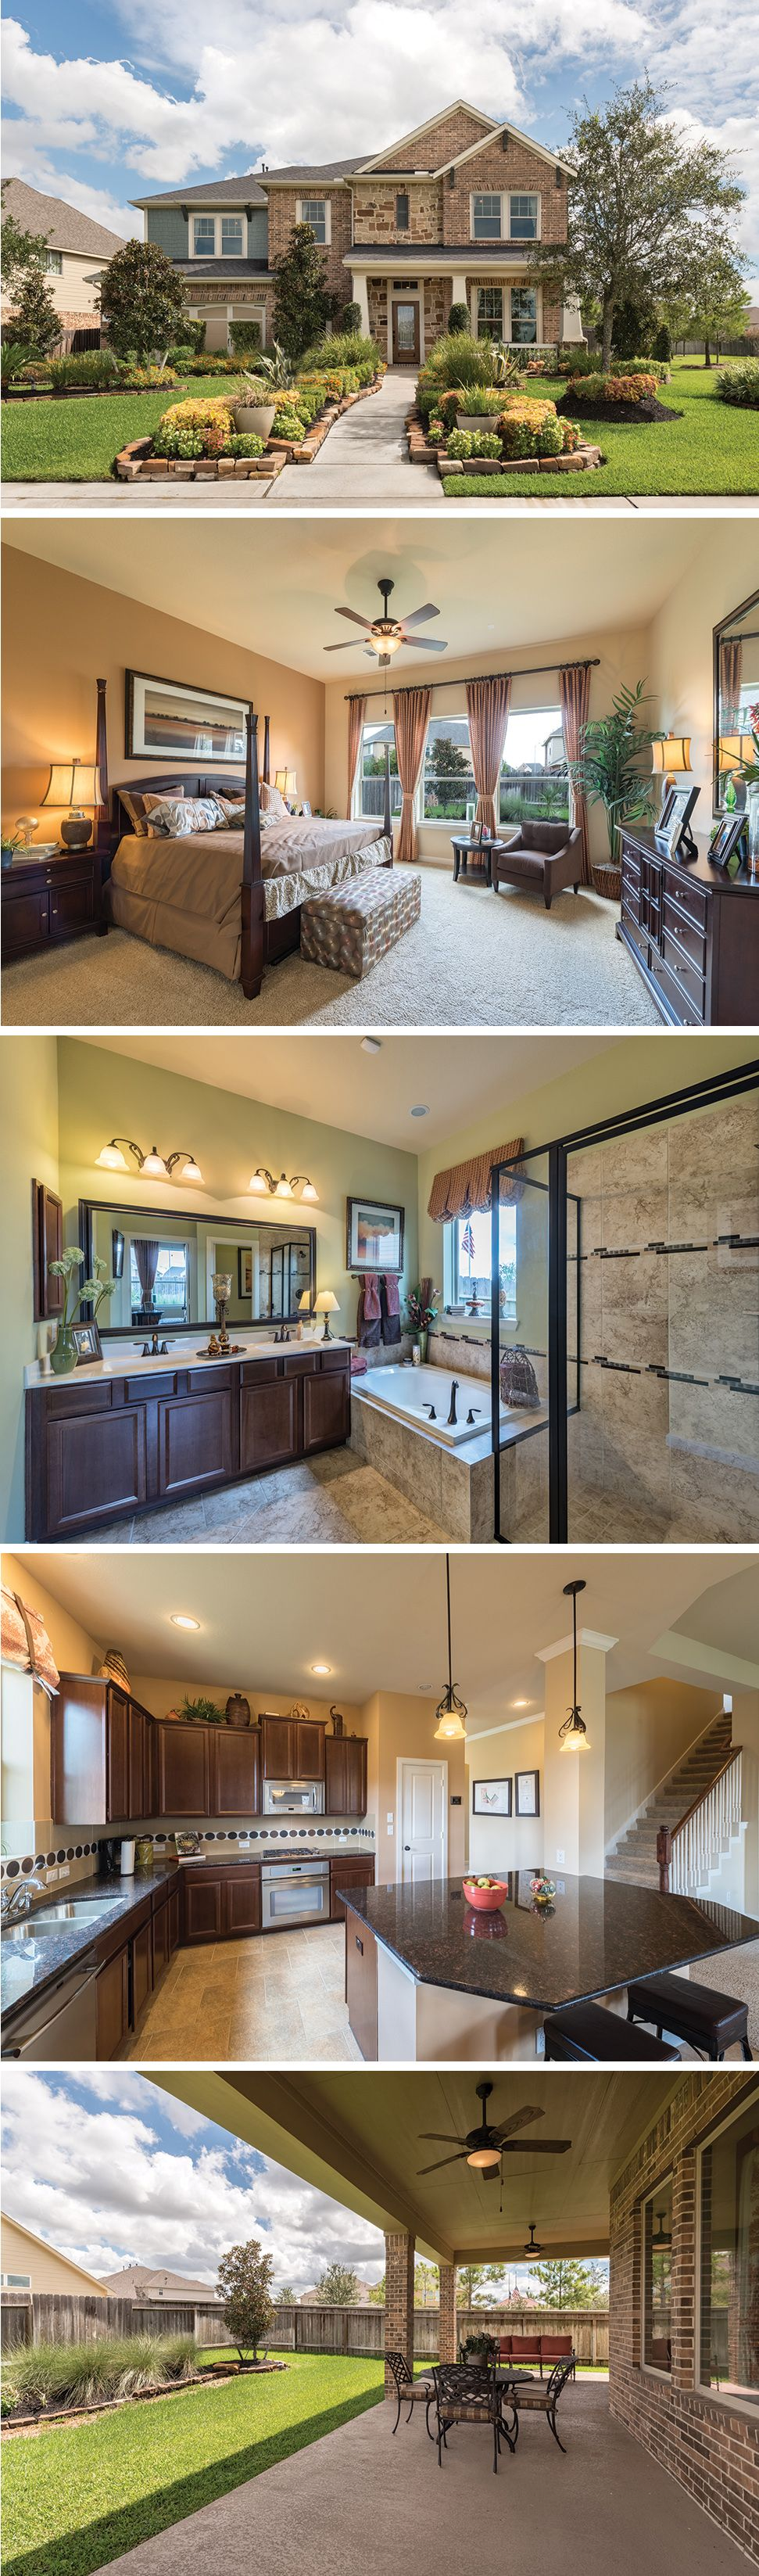 The Macalaster by David Weekley Homes in